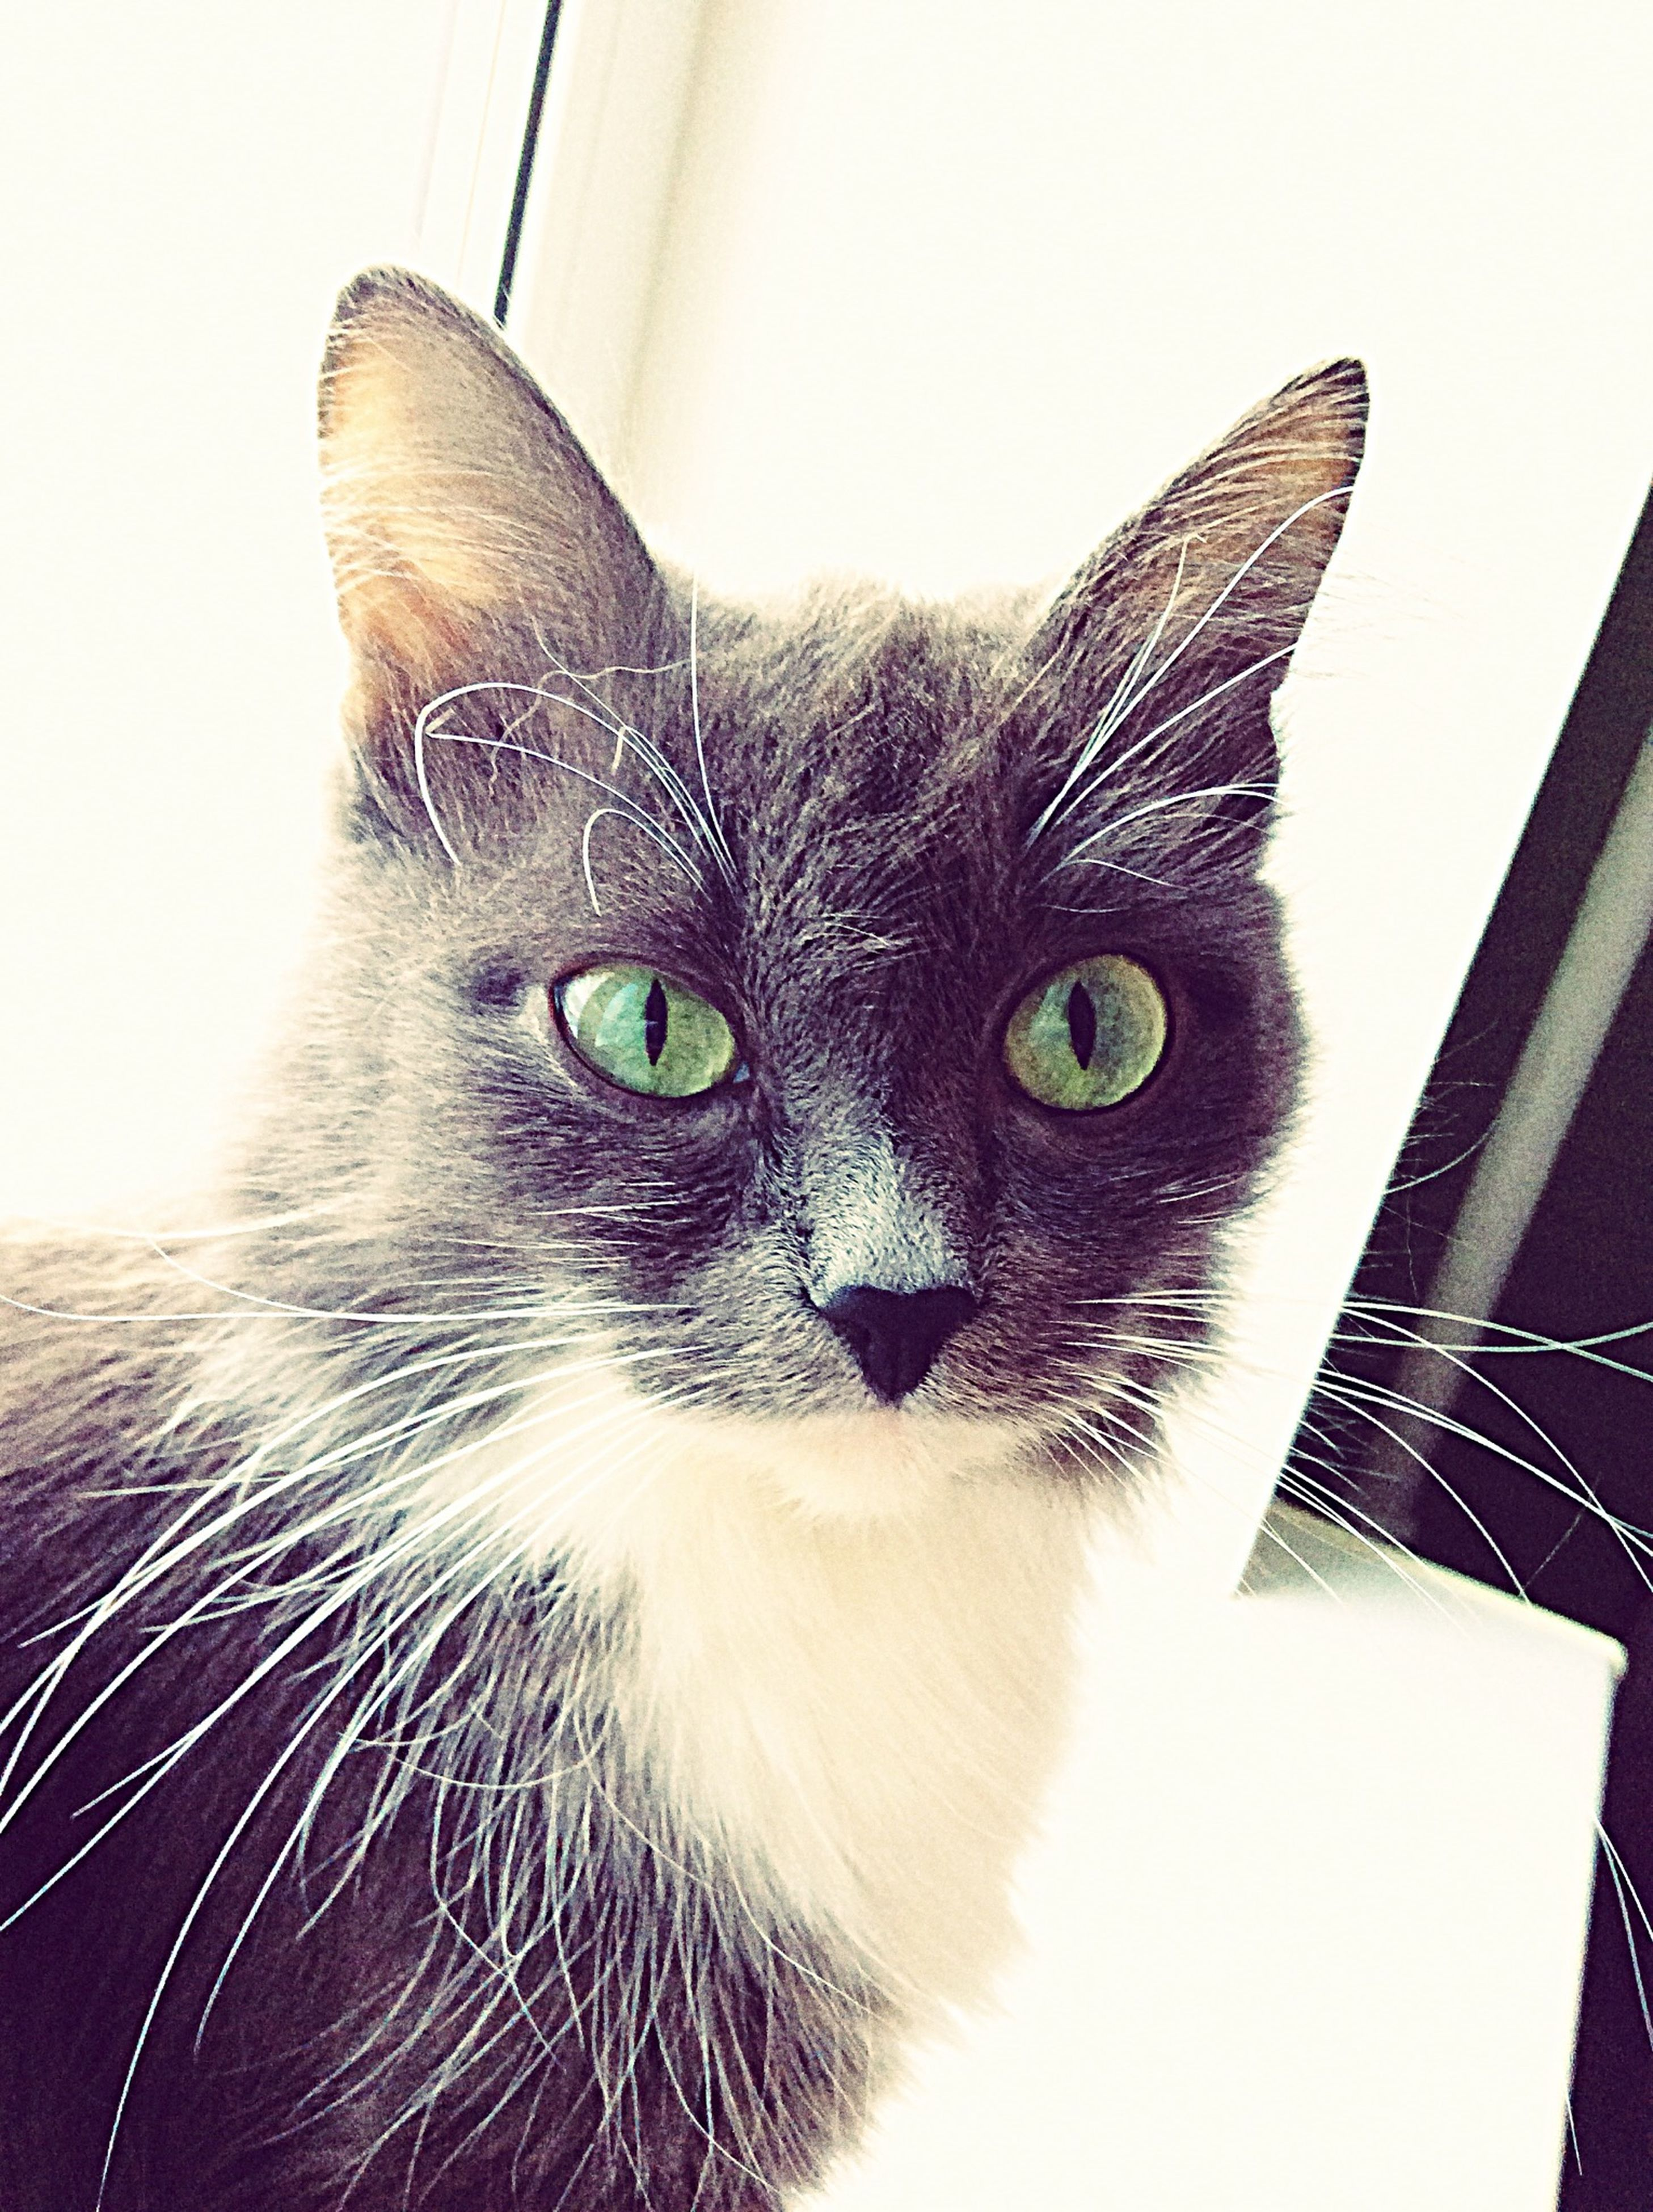 domestic cat, cat, one animal, animal themes, feline, pets, domestic animals, whisker, mammal, portrait, looking at camera, animal head, indoors, animal eye, staring, close-up, alertness, front view, animal body part